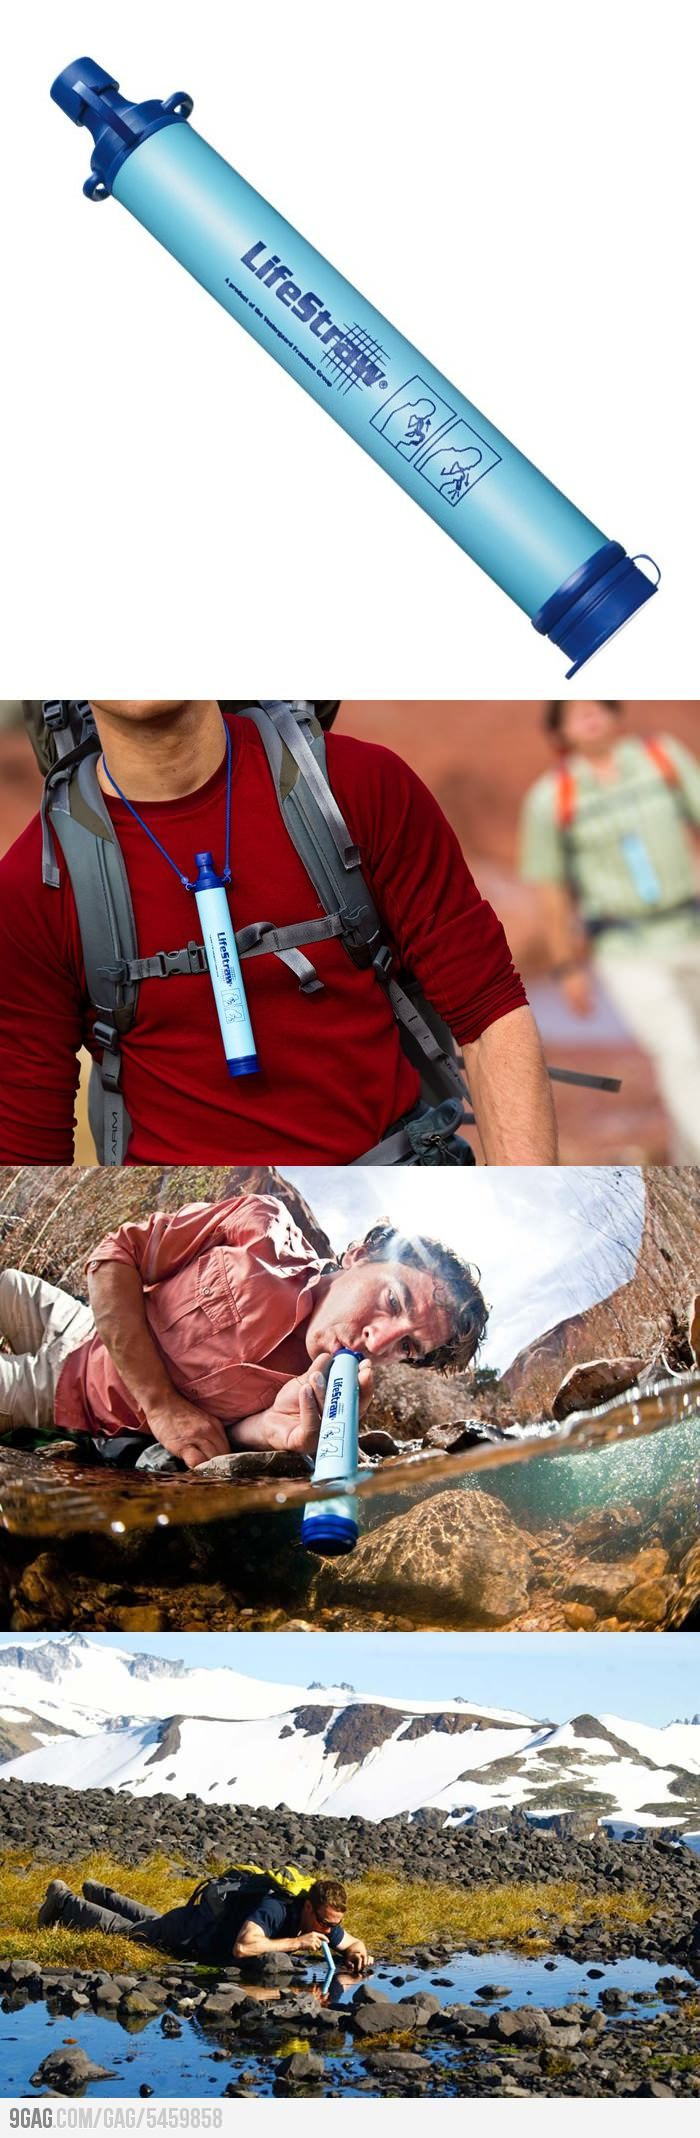 LifeStraw - Drink All The Dirty Water! Interesting item everyone one should have on at home and in car...